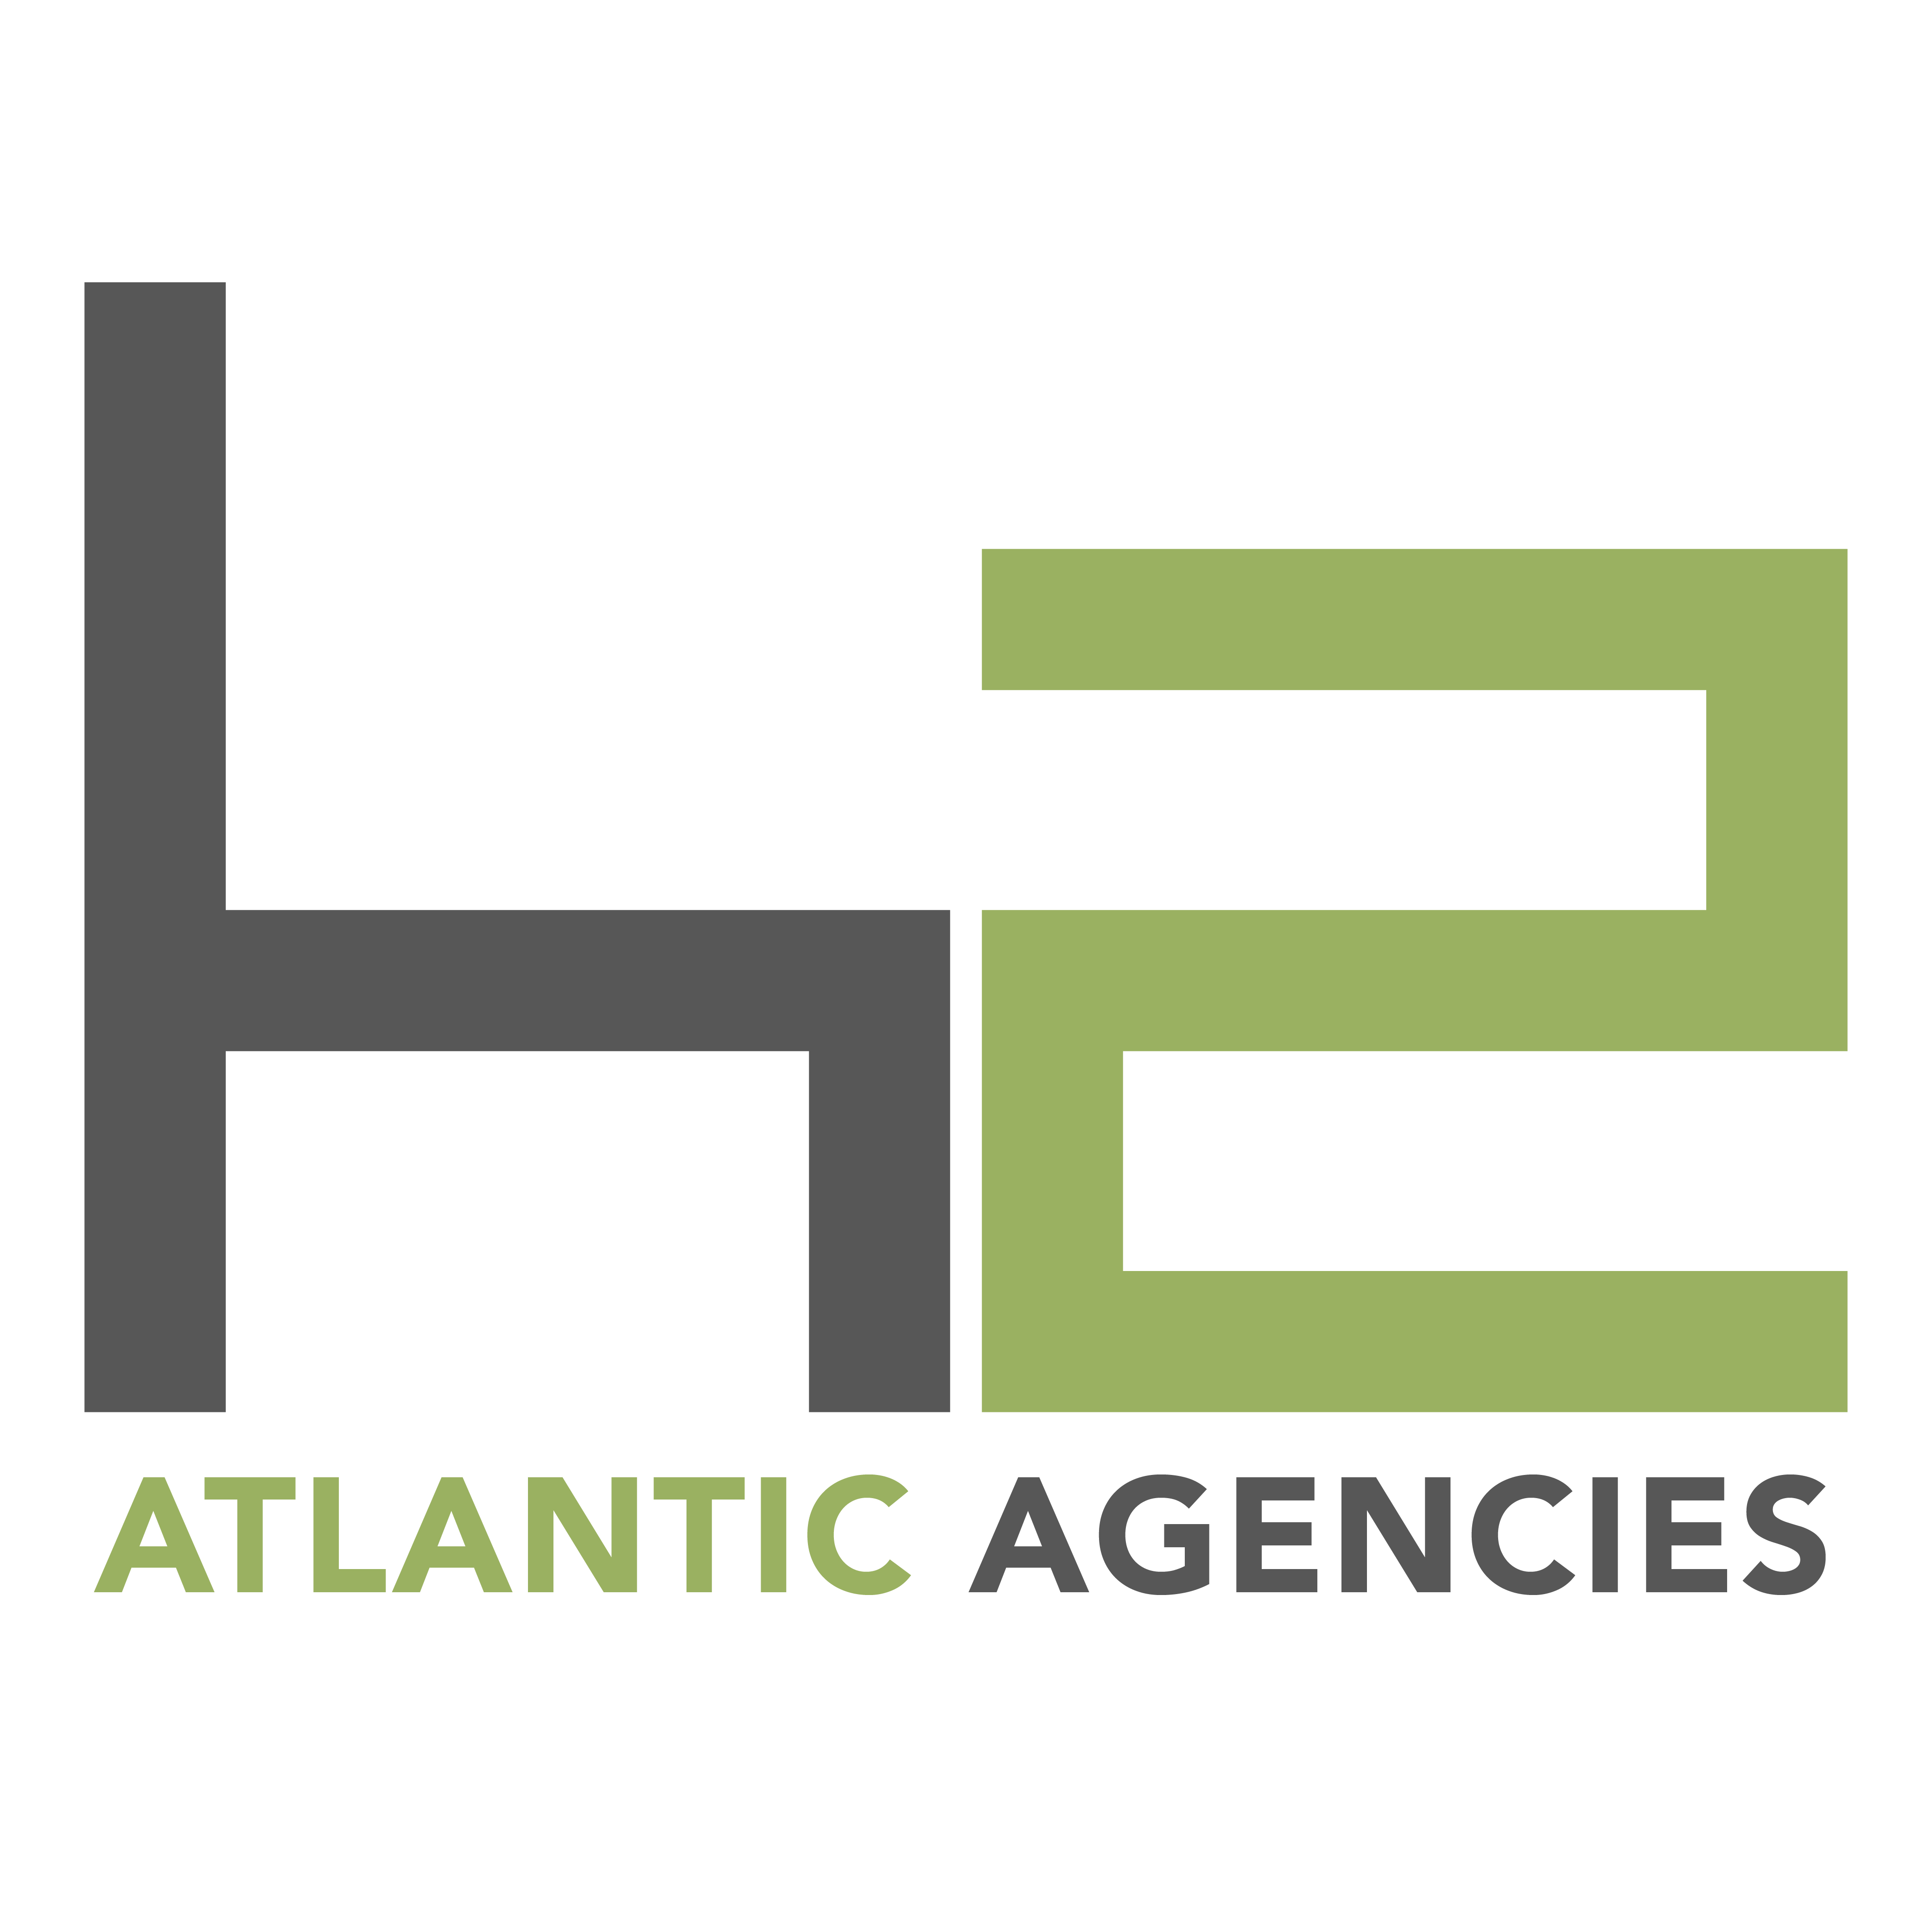 h2 Atlantic Agencies